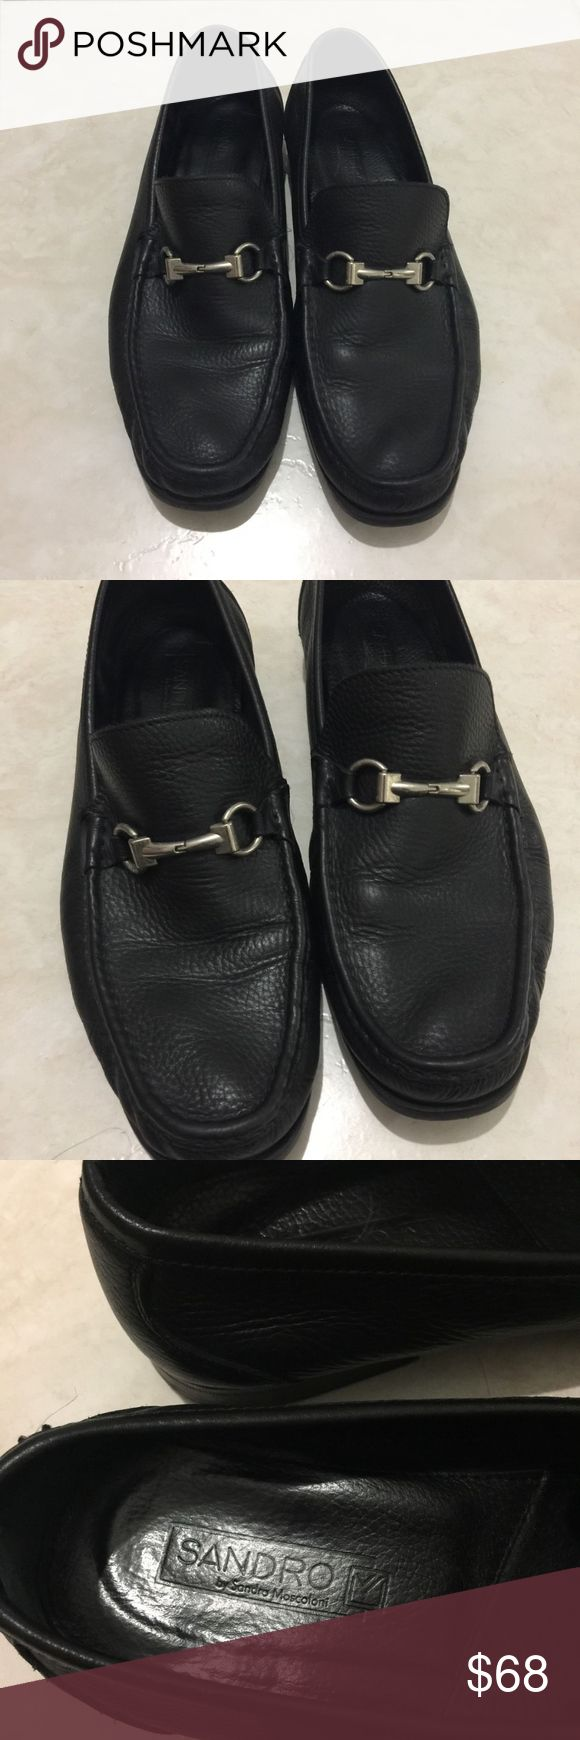 Sandro by Sandra Moscoloni Malibu Black Loafers Excellent used condition.  Resembles Gucci loafers. Sandro Shoes Loafers & Slip-Ons